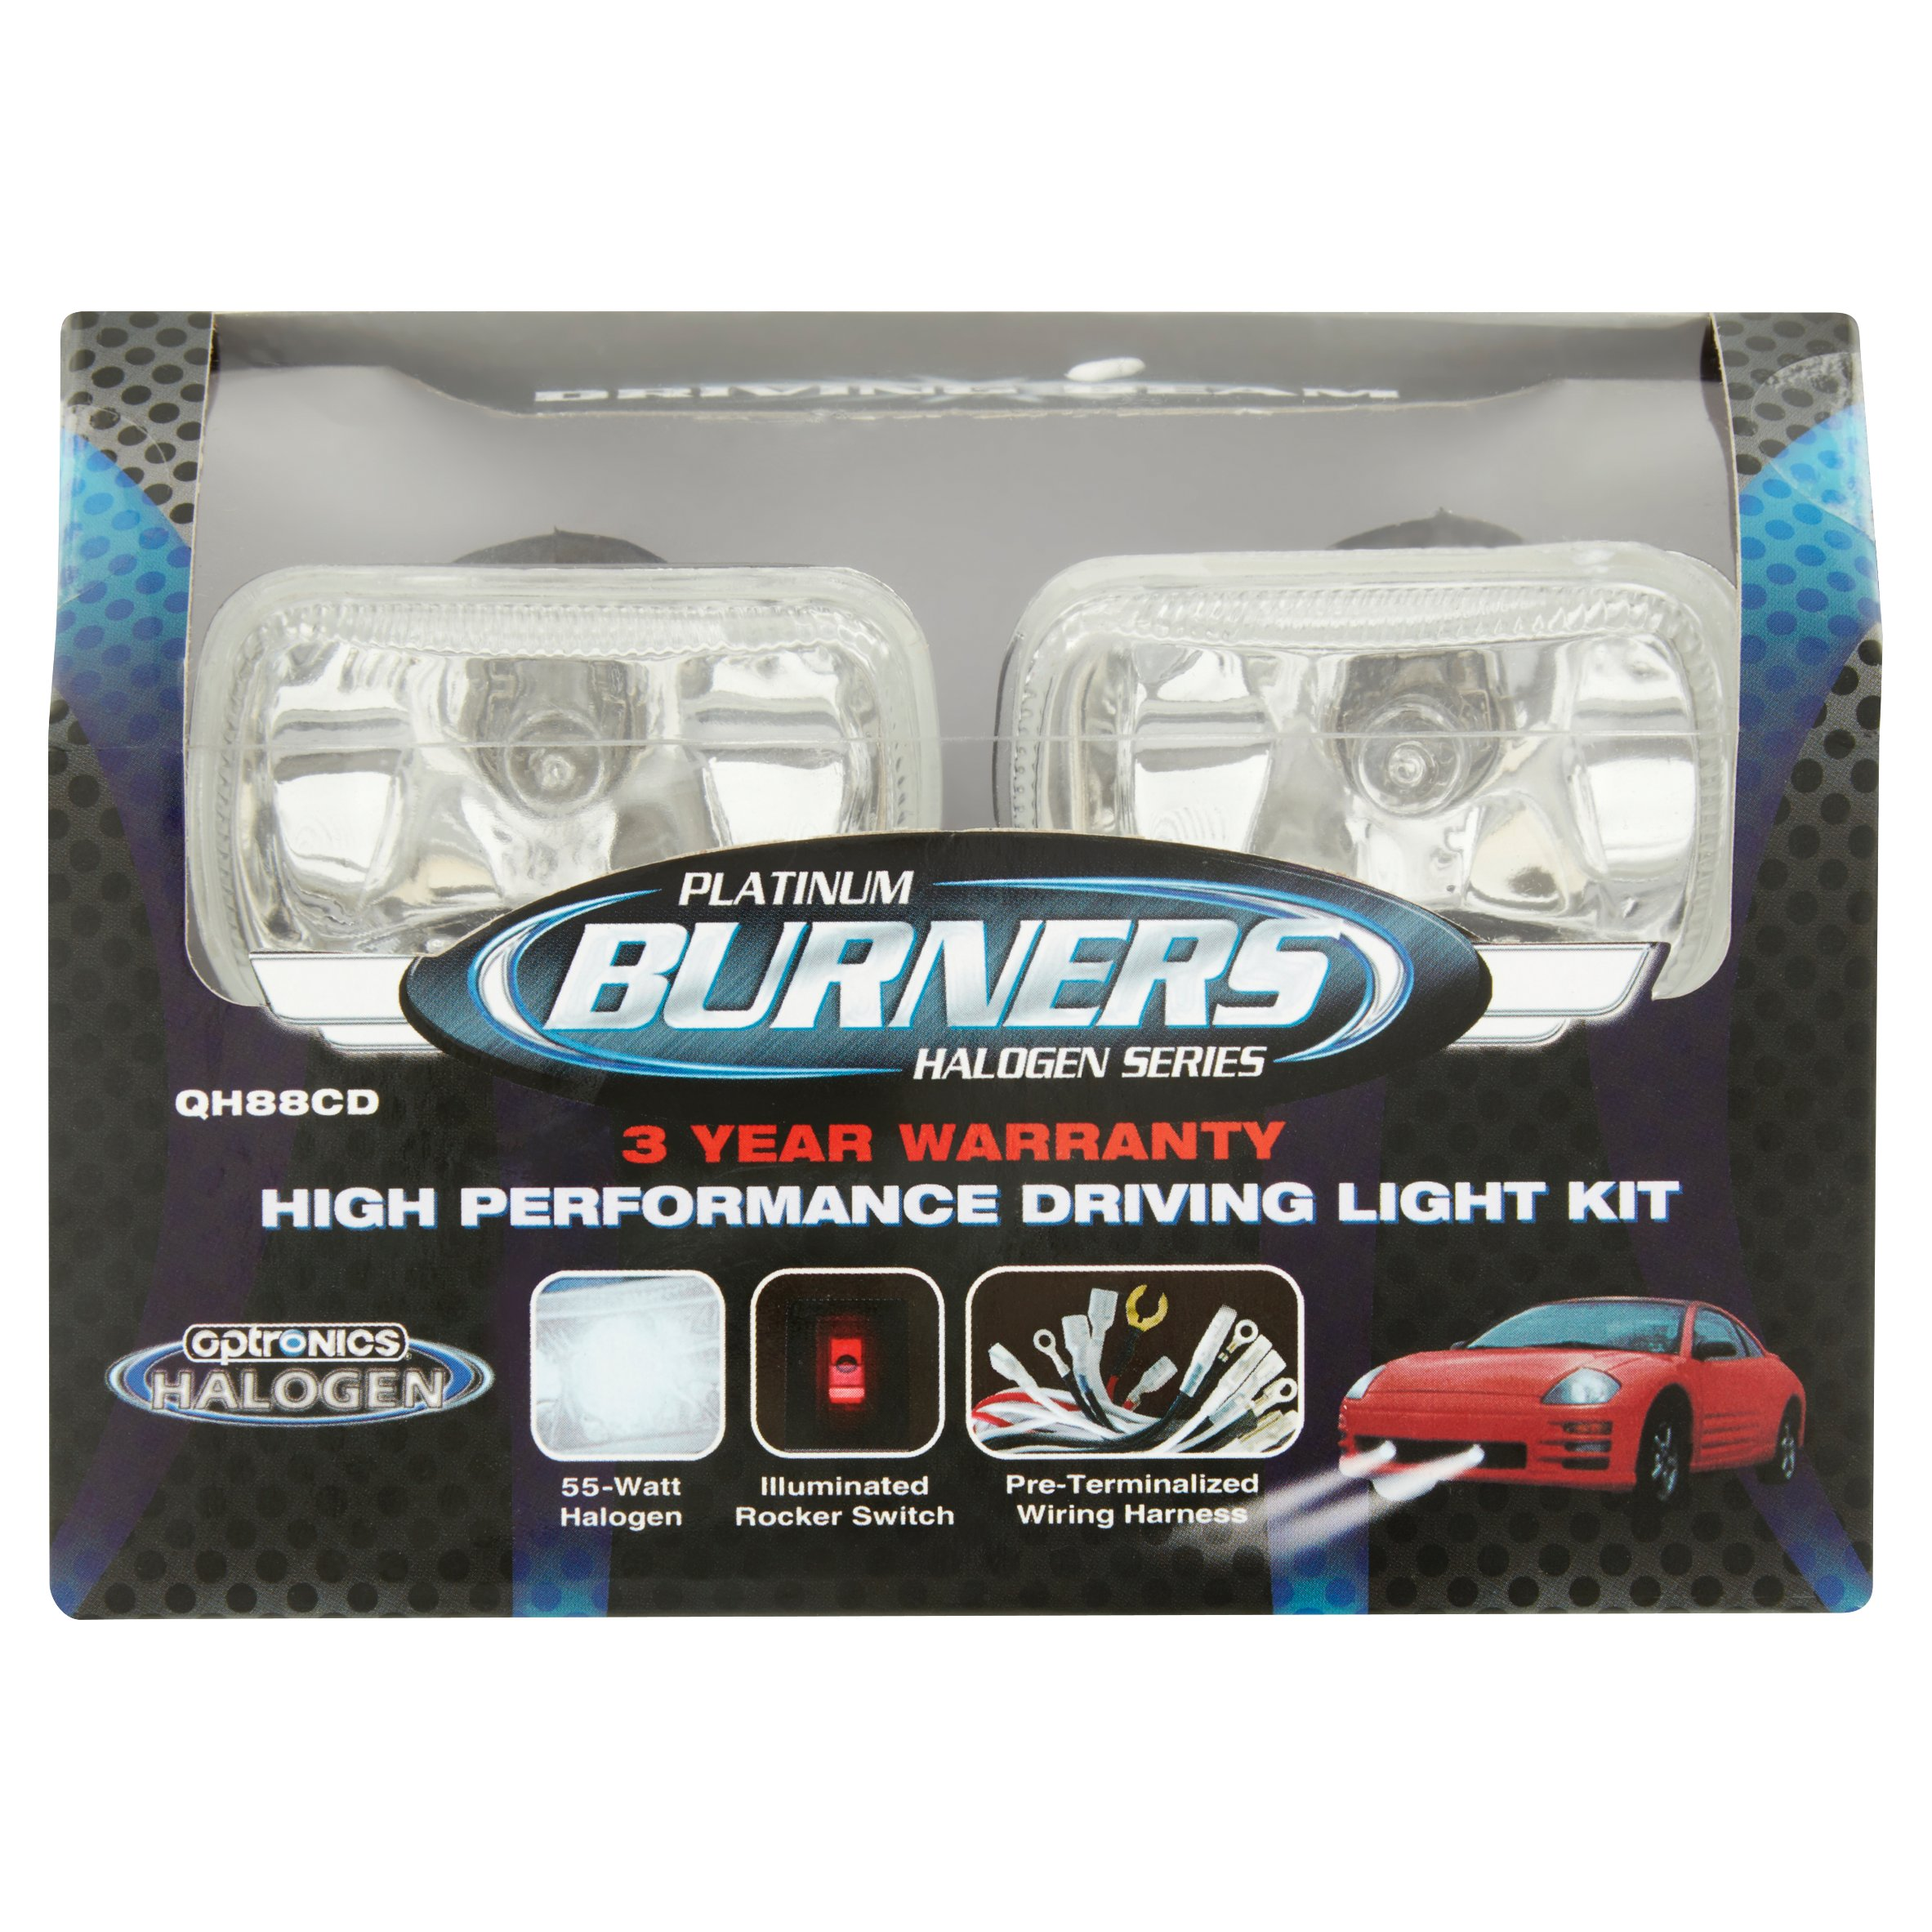 Optronics Platinum Burners Halogen Series 55-Watt Halogen High Performance Driving Light Kit